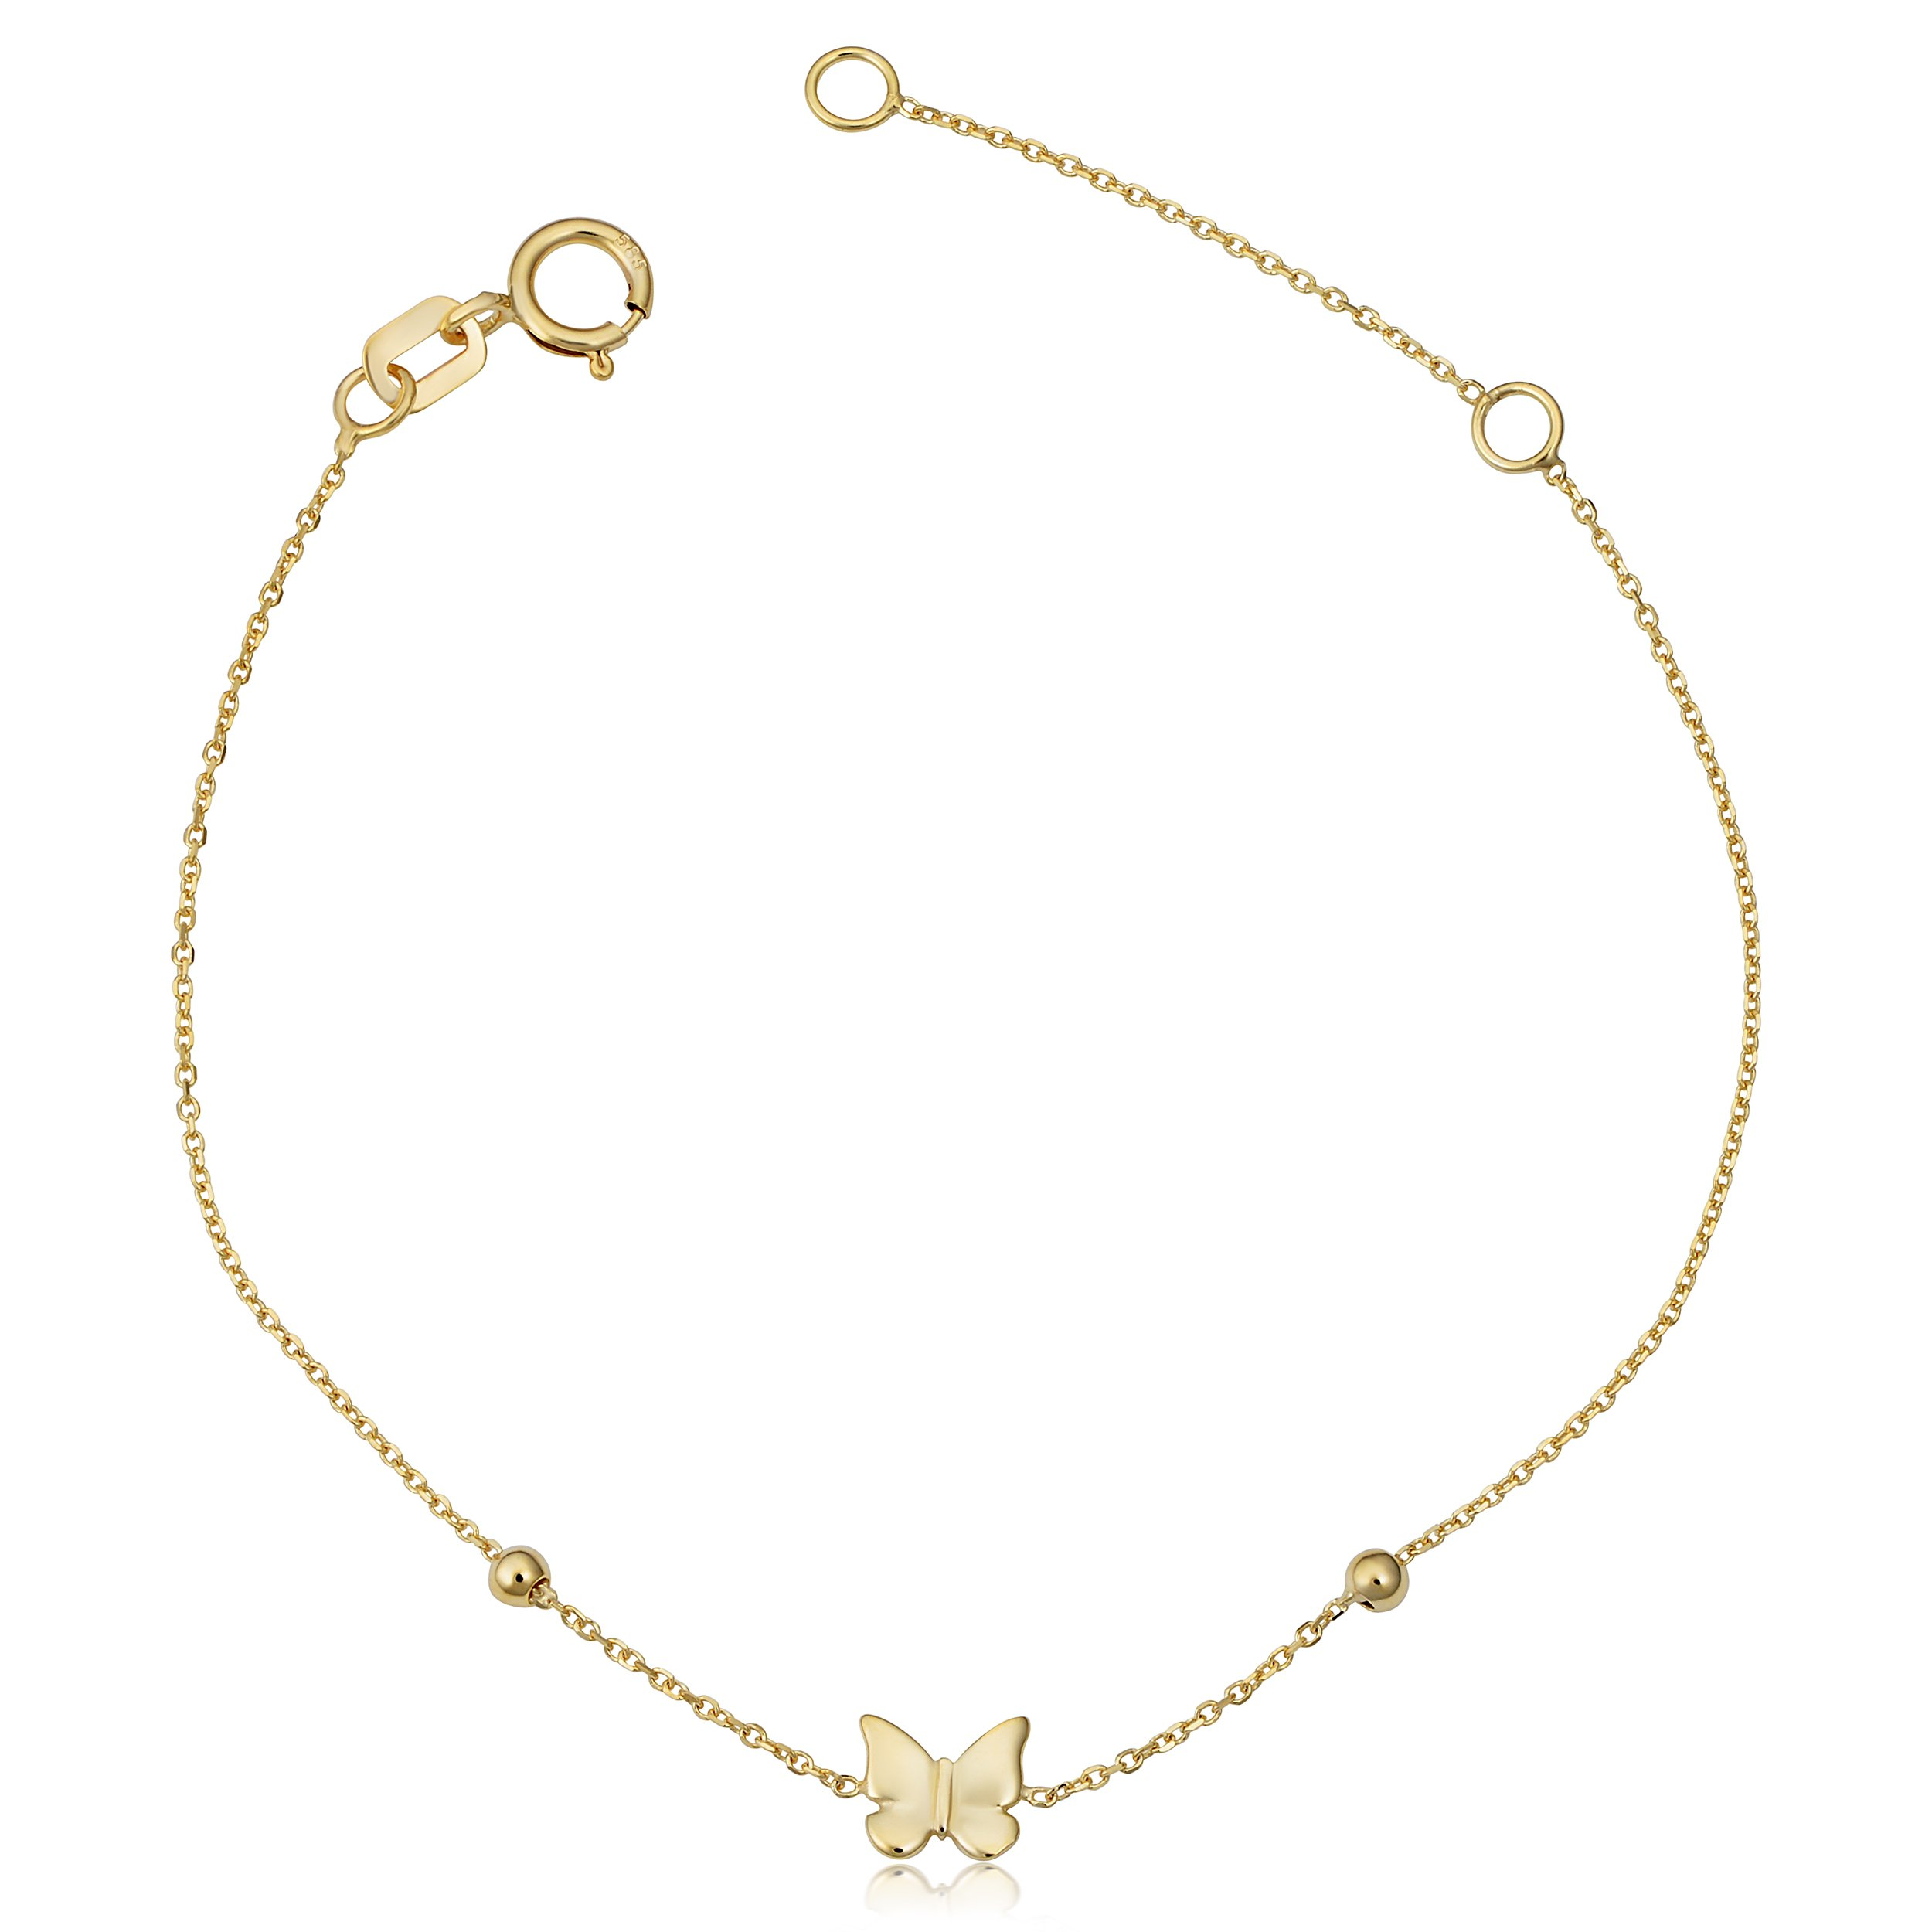 Children's 14k Yellow Gold Butterfly Bead Adjustable Length Bracelet (adjust to 5.5'' or 6.5'')